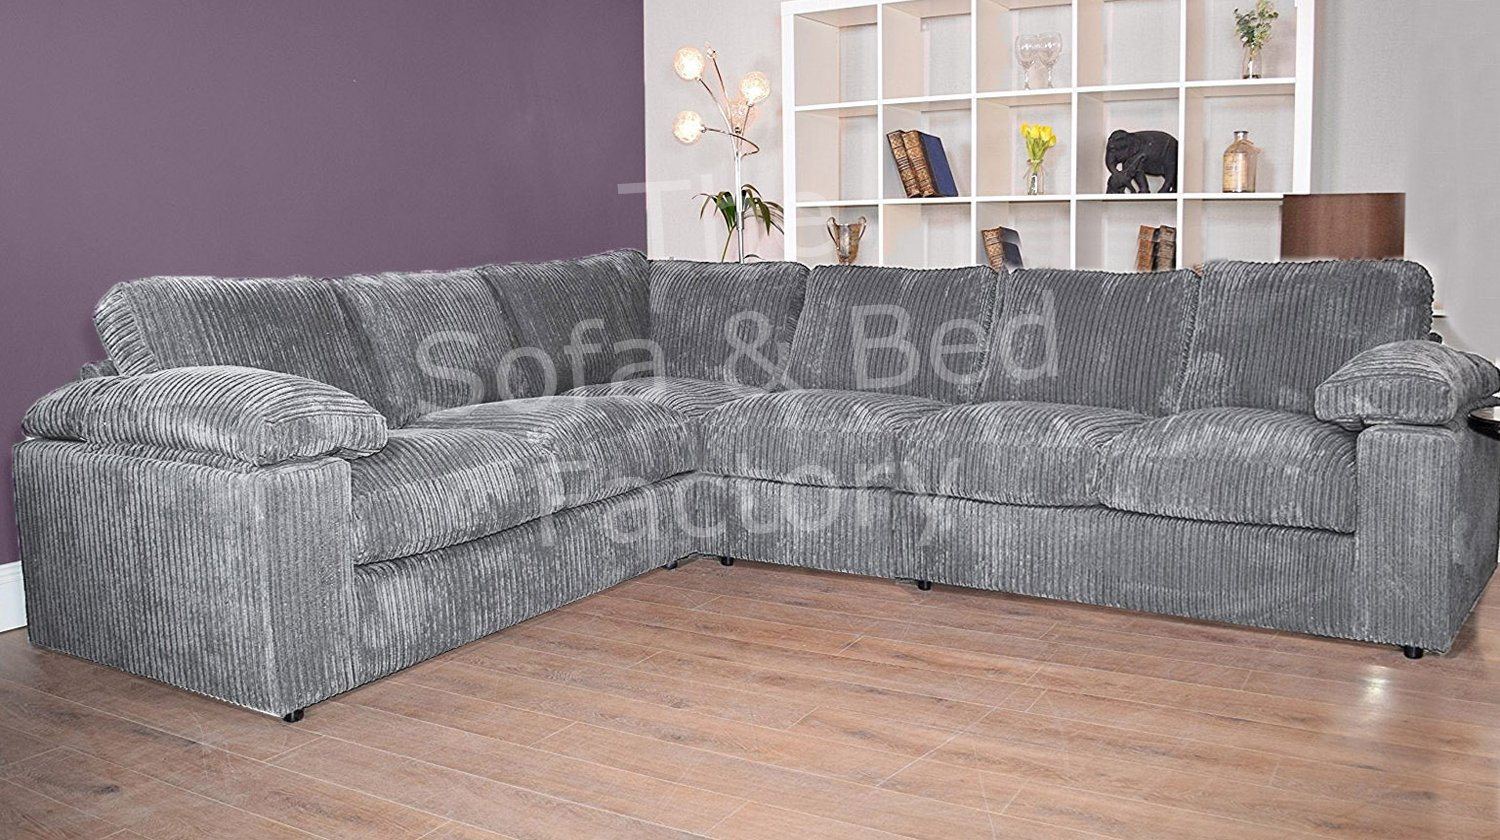 Surprising Details About New Ruxley Large Fabric 6 Seater Corner Sofa 2 Corner 3 Charcoal Grey Cheap Download Free Architecture Designs Embacsunscenecom